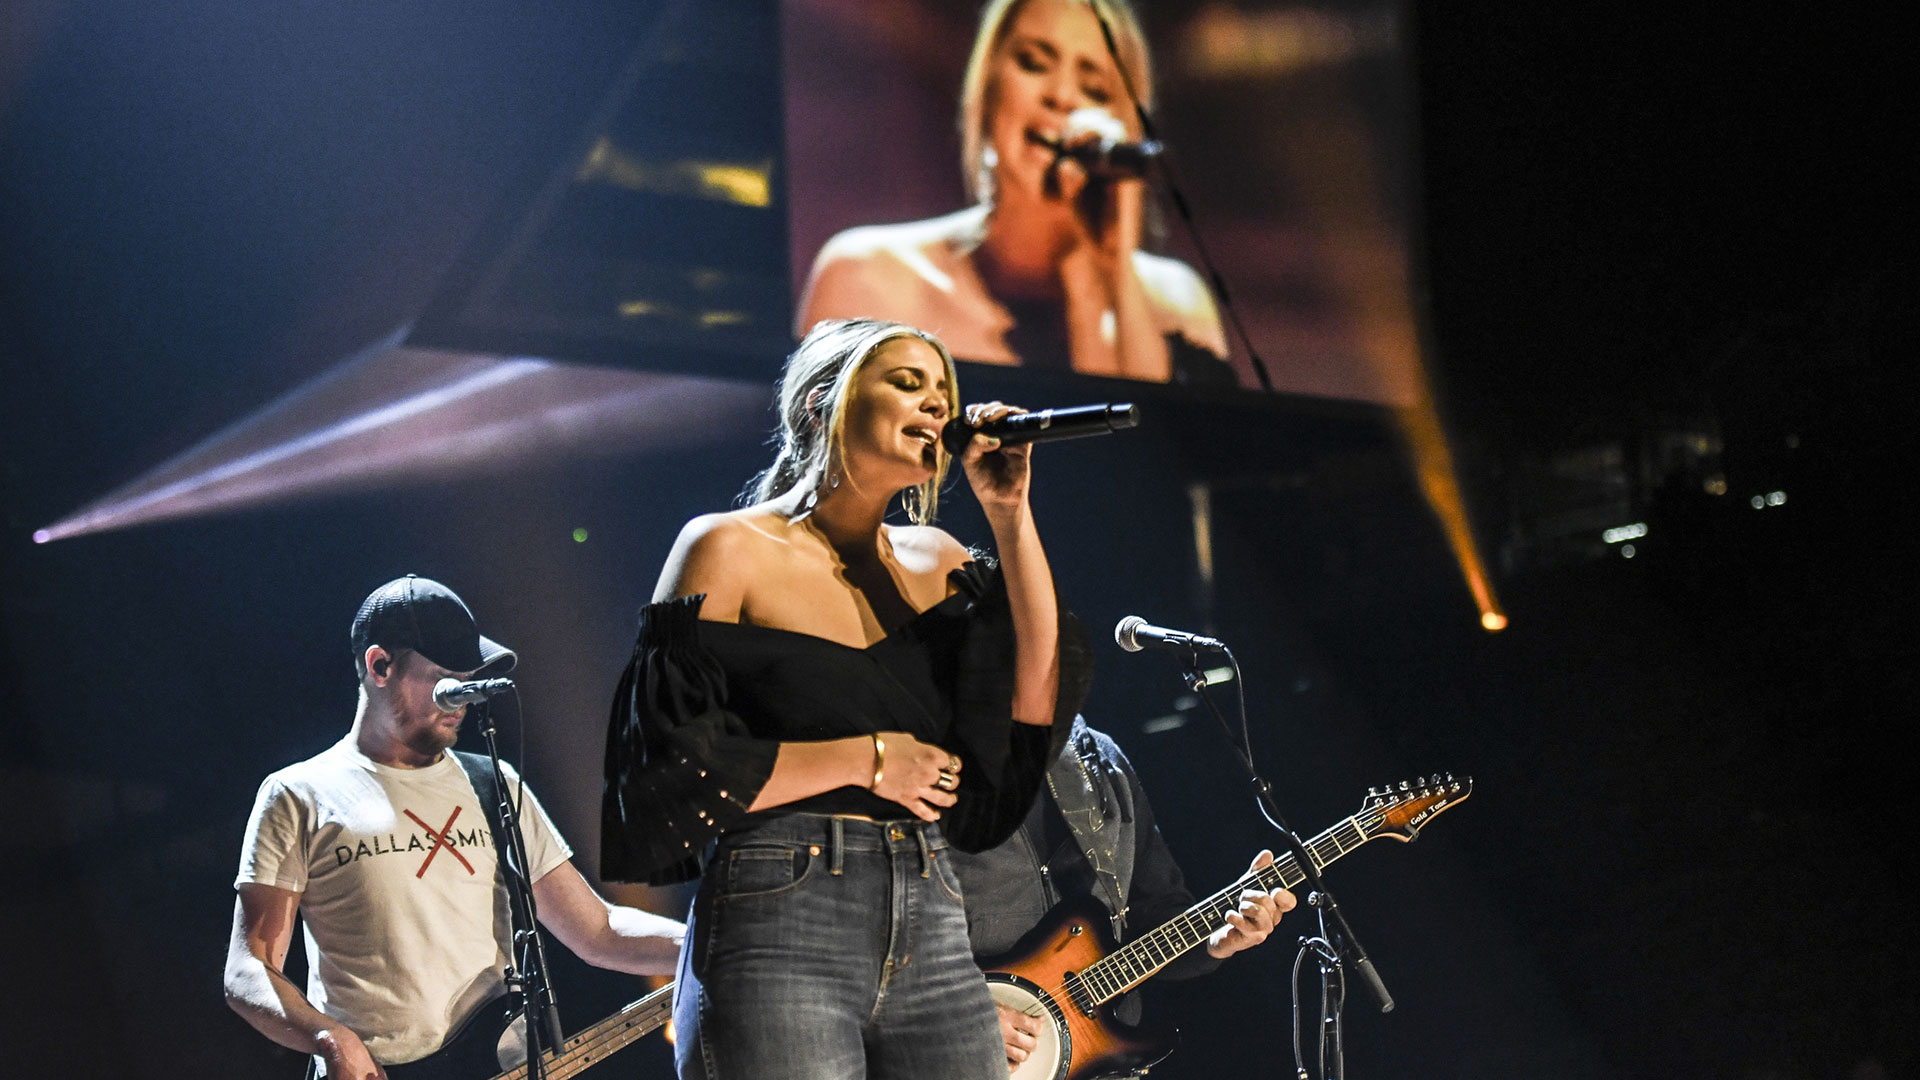 Lauren Alaina, winner of New Female Vocalist of the Year, preps a show-stopping performance.